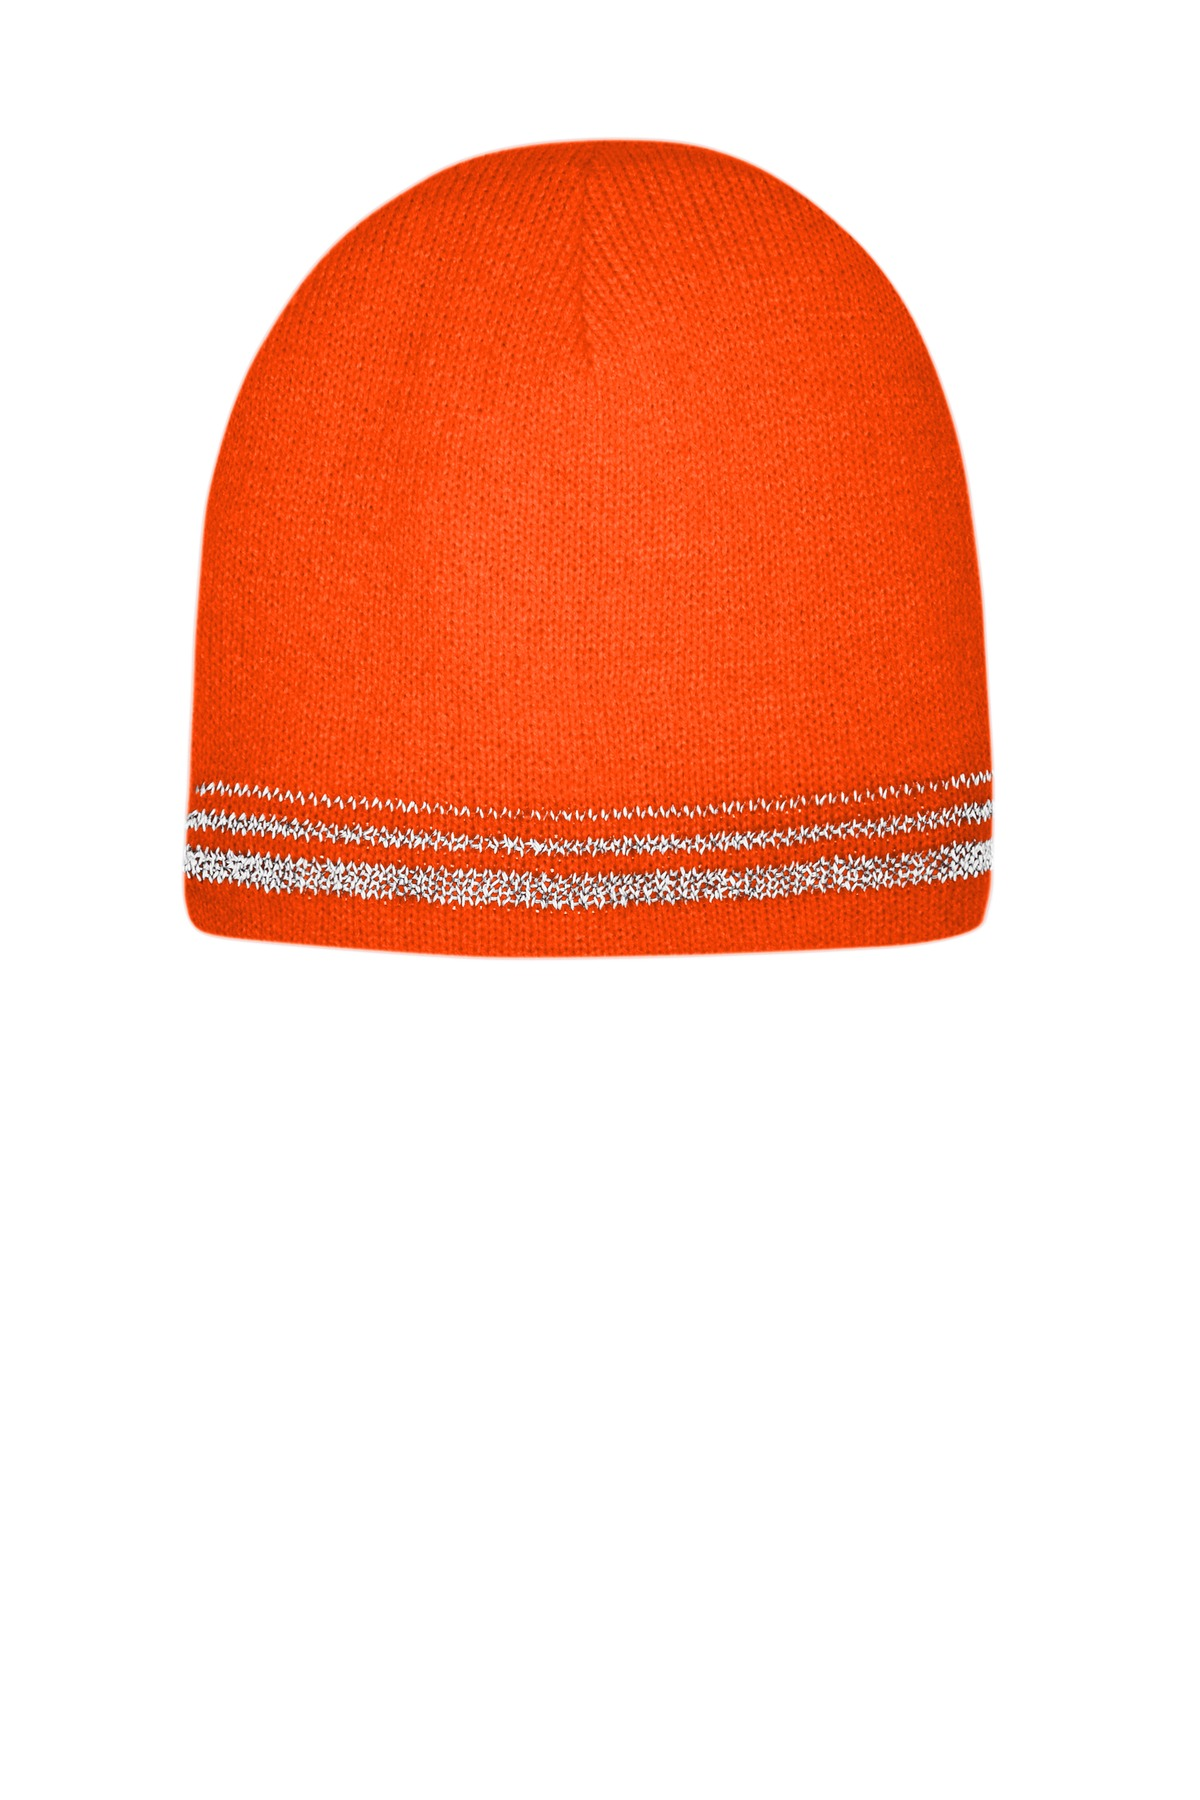 CornerStone  ®   Lined Enhanced Visibility with Reflective Stripes Beanie CS804 - Safety Orange/ Reflective